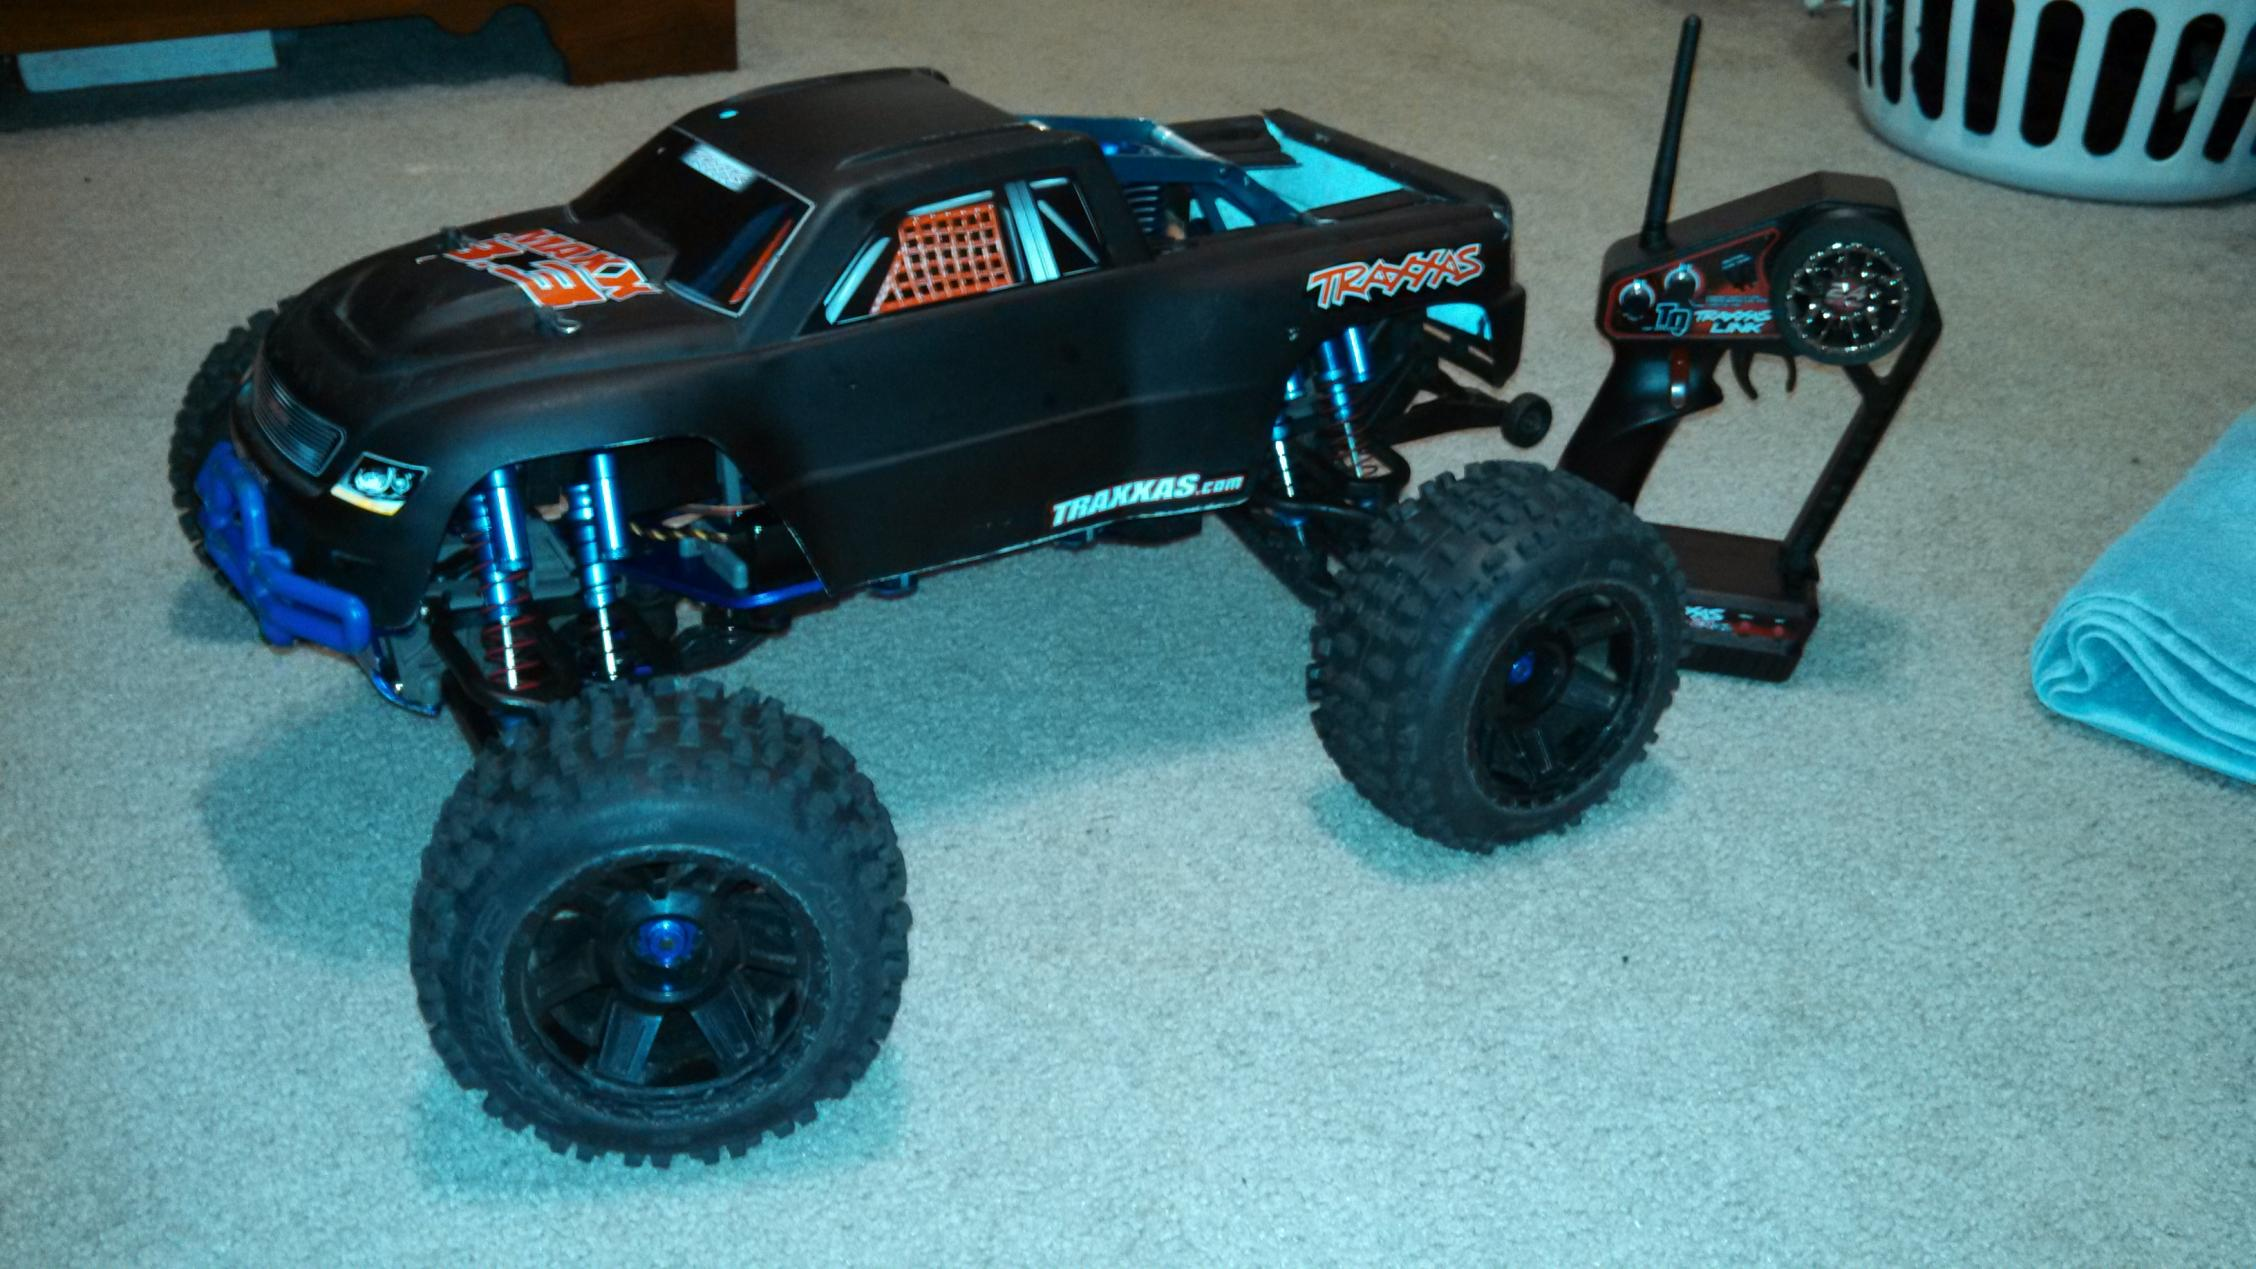 traxxas t maxx with picco 26 maxx great truck r c tech forums. Black Bedroom Furniture Sets. Home Design Ideas